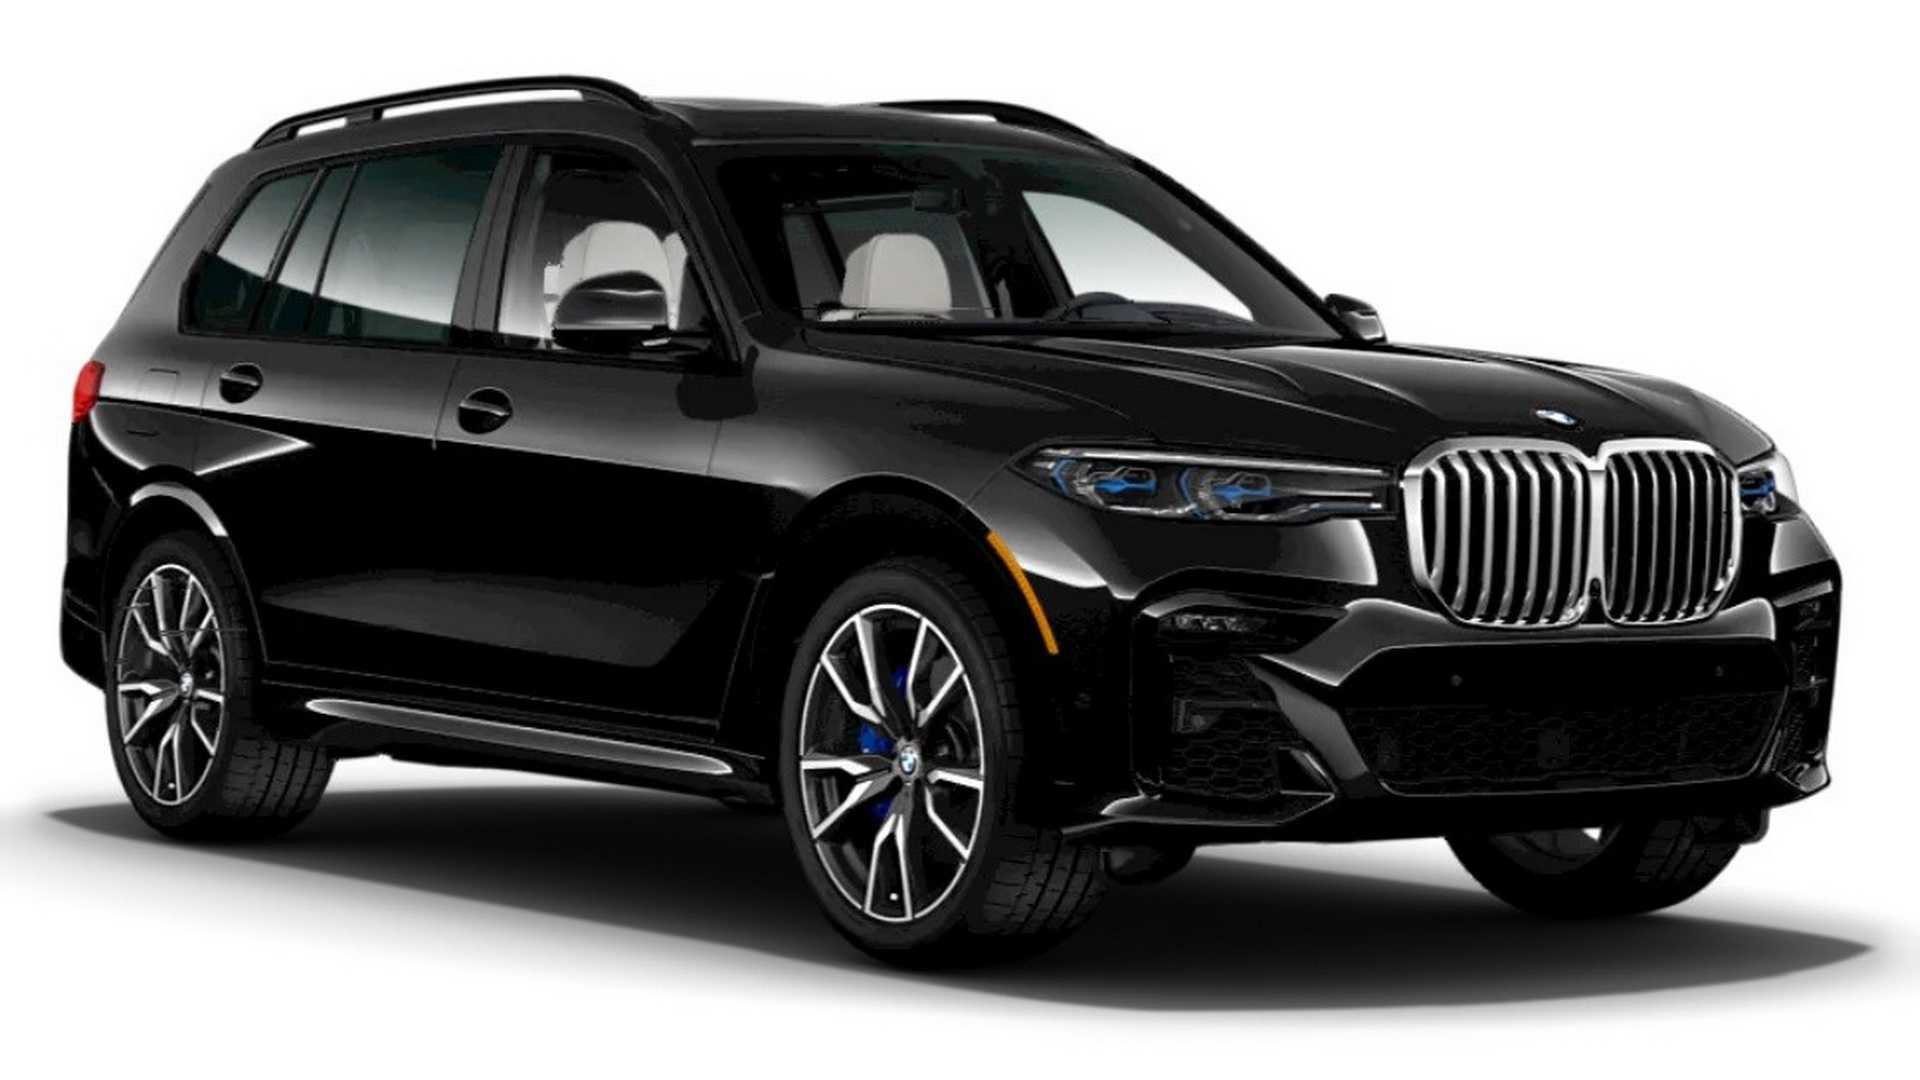 Bmw X7 2019 Bản Full Options C 243 Gi 225 122 425 Usd